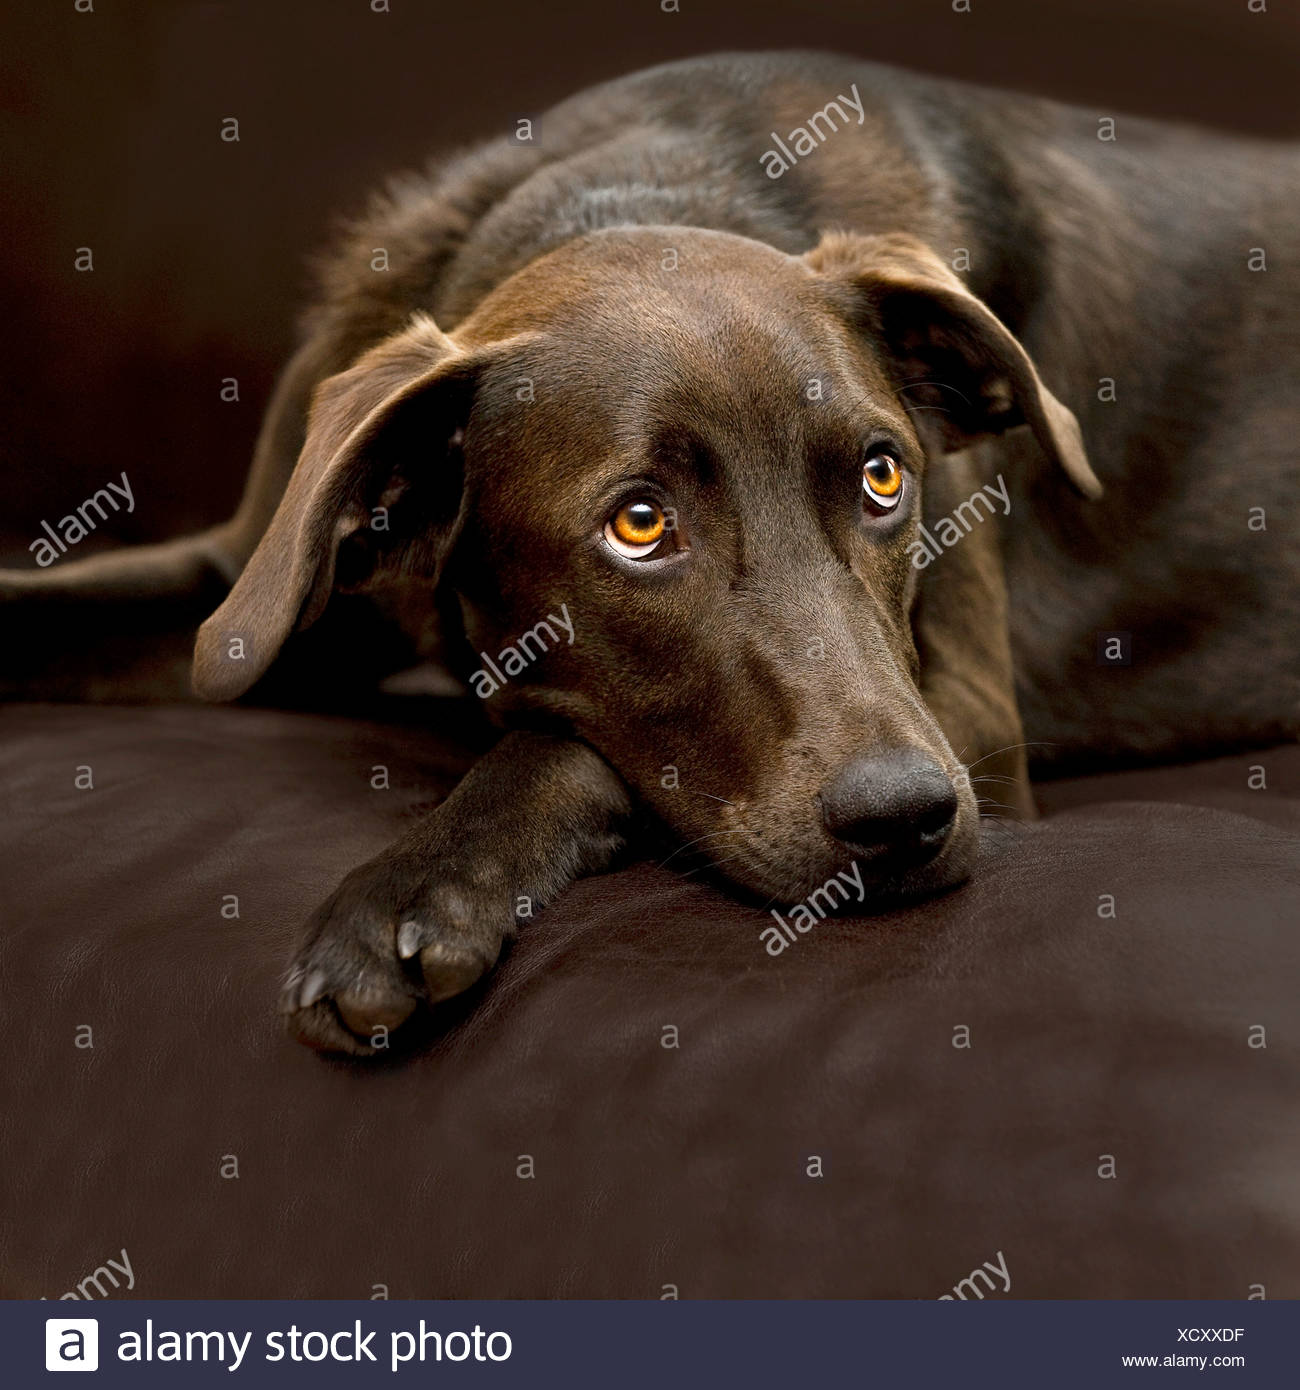 half breed dog (German Shorthaired Pointer/Harz Fox dog) - lying on couch - Stock Image